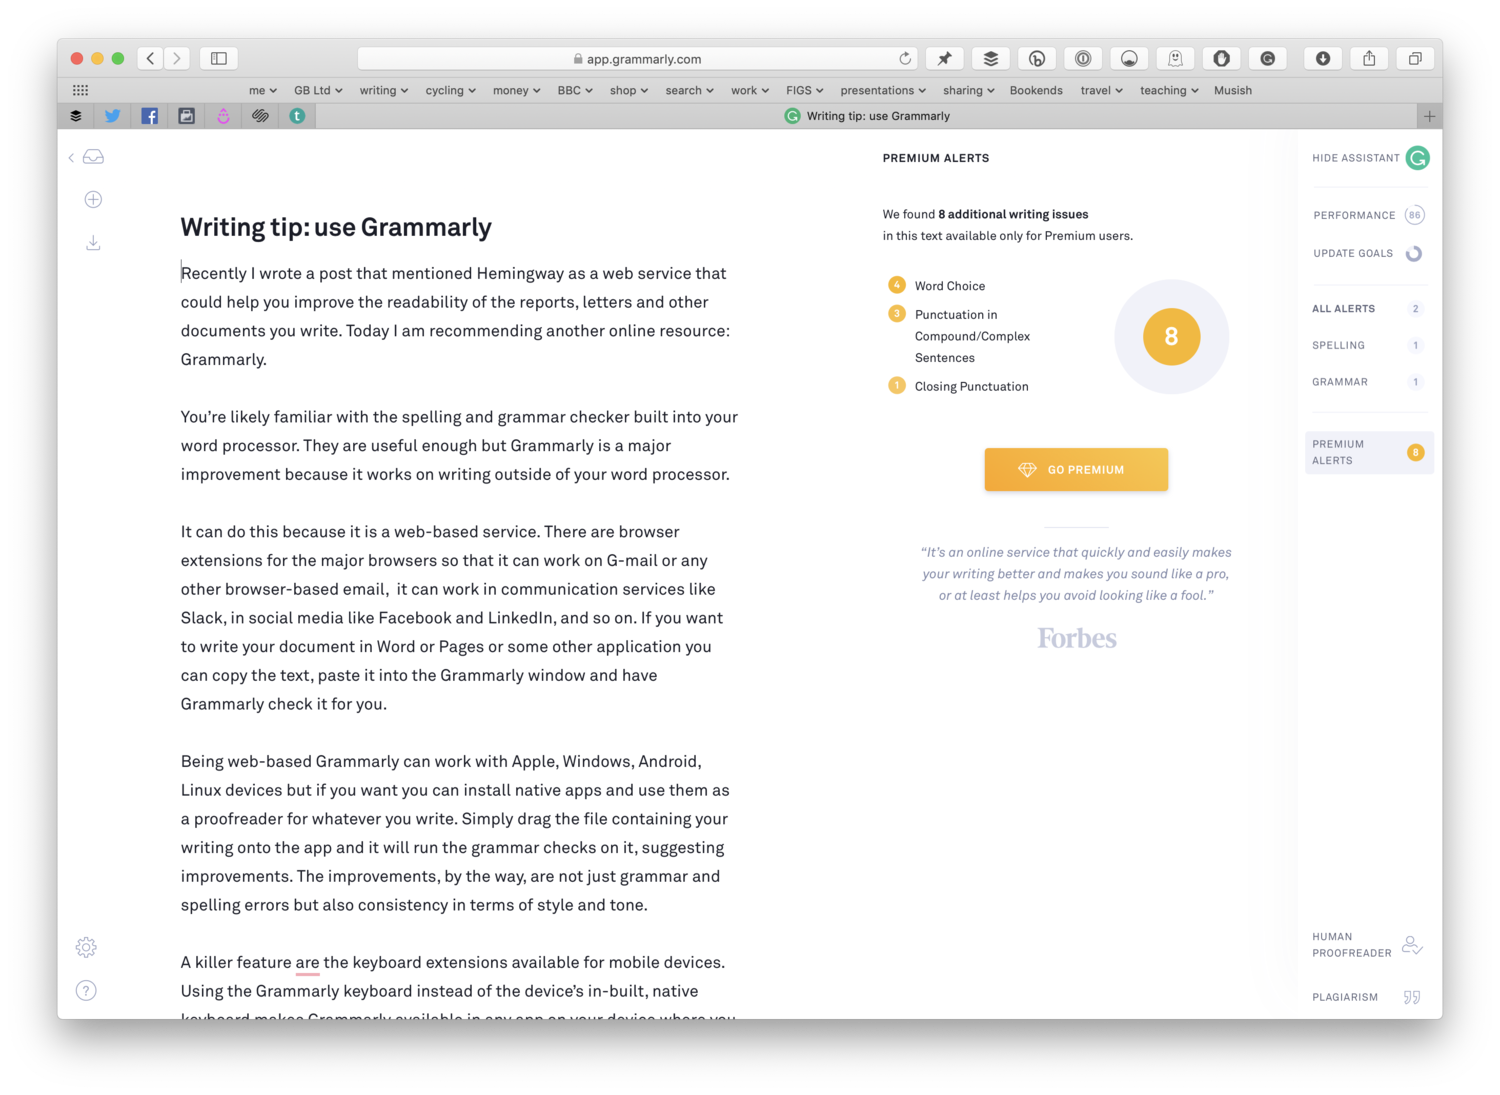 Grammarly can improve your writing wherever you write